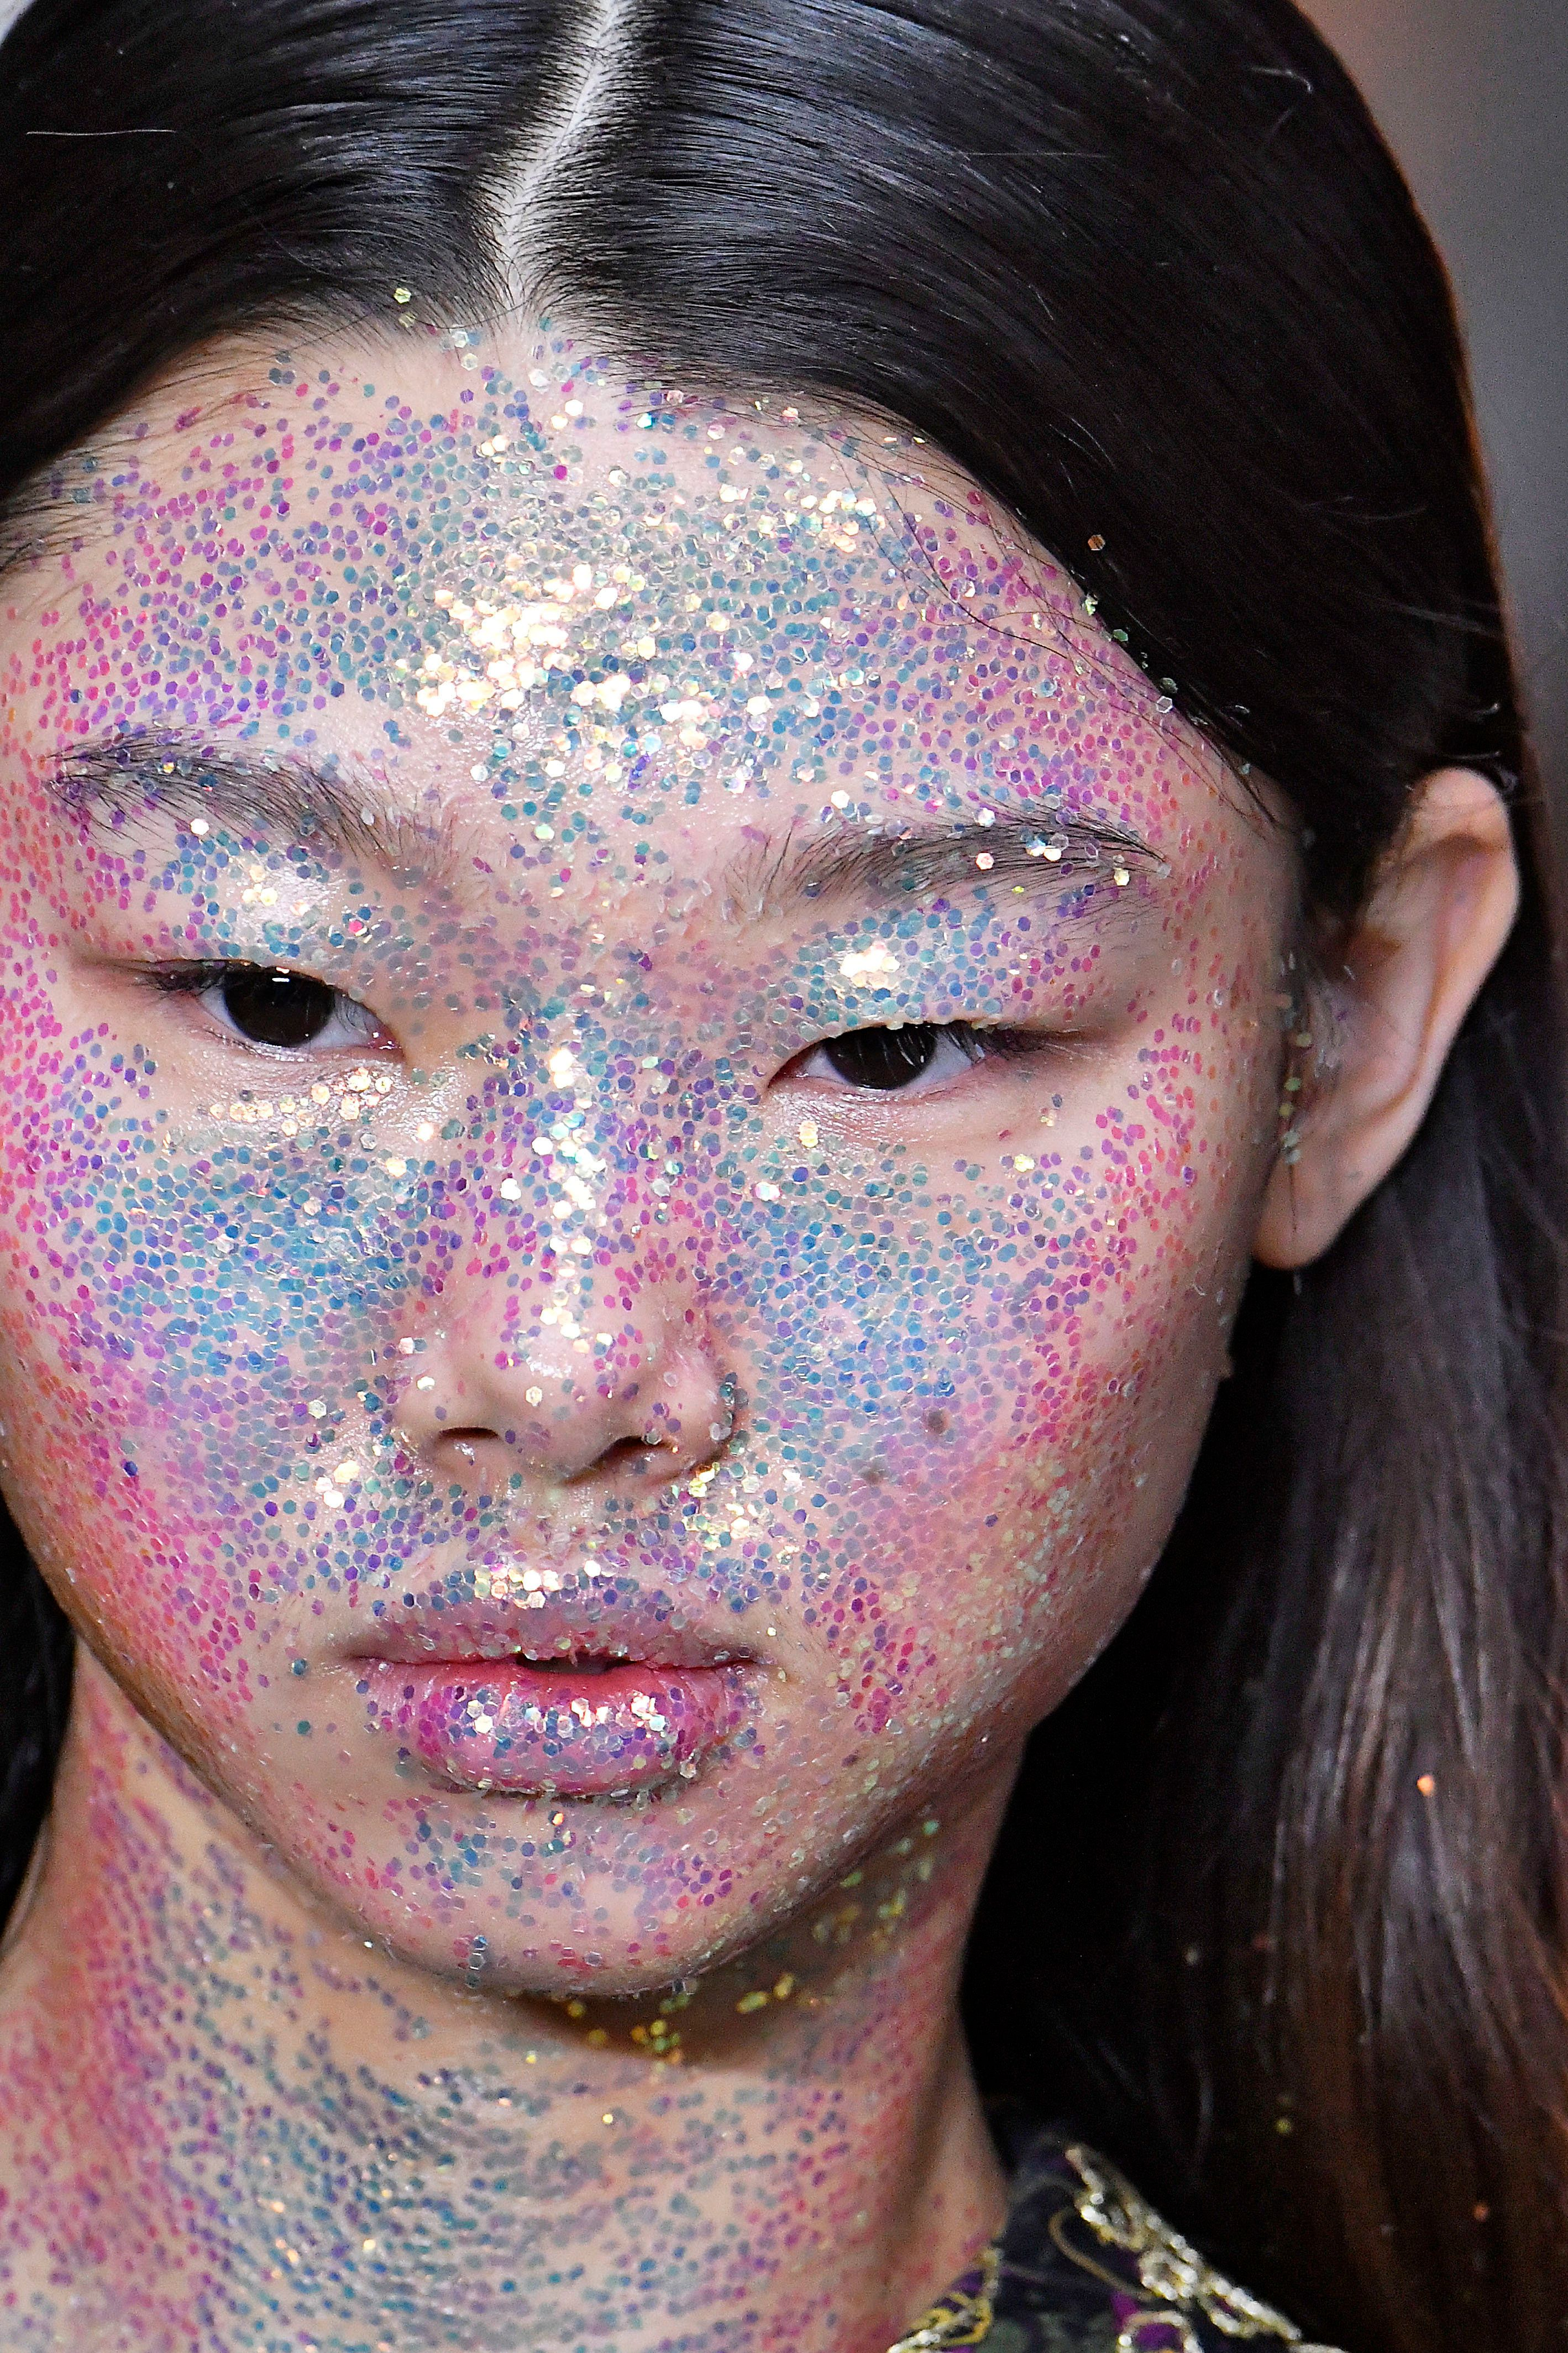 A model with a face covered in glitter at the Giambattista fall 2018 ready-to-wear show in Paris.If you don't want to look like a disco ball, this is probably a look you should avoid.